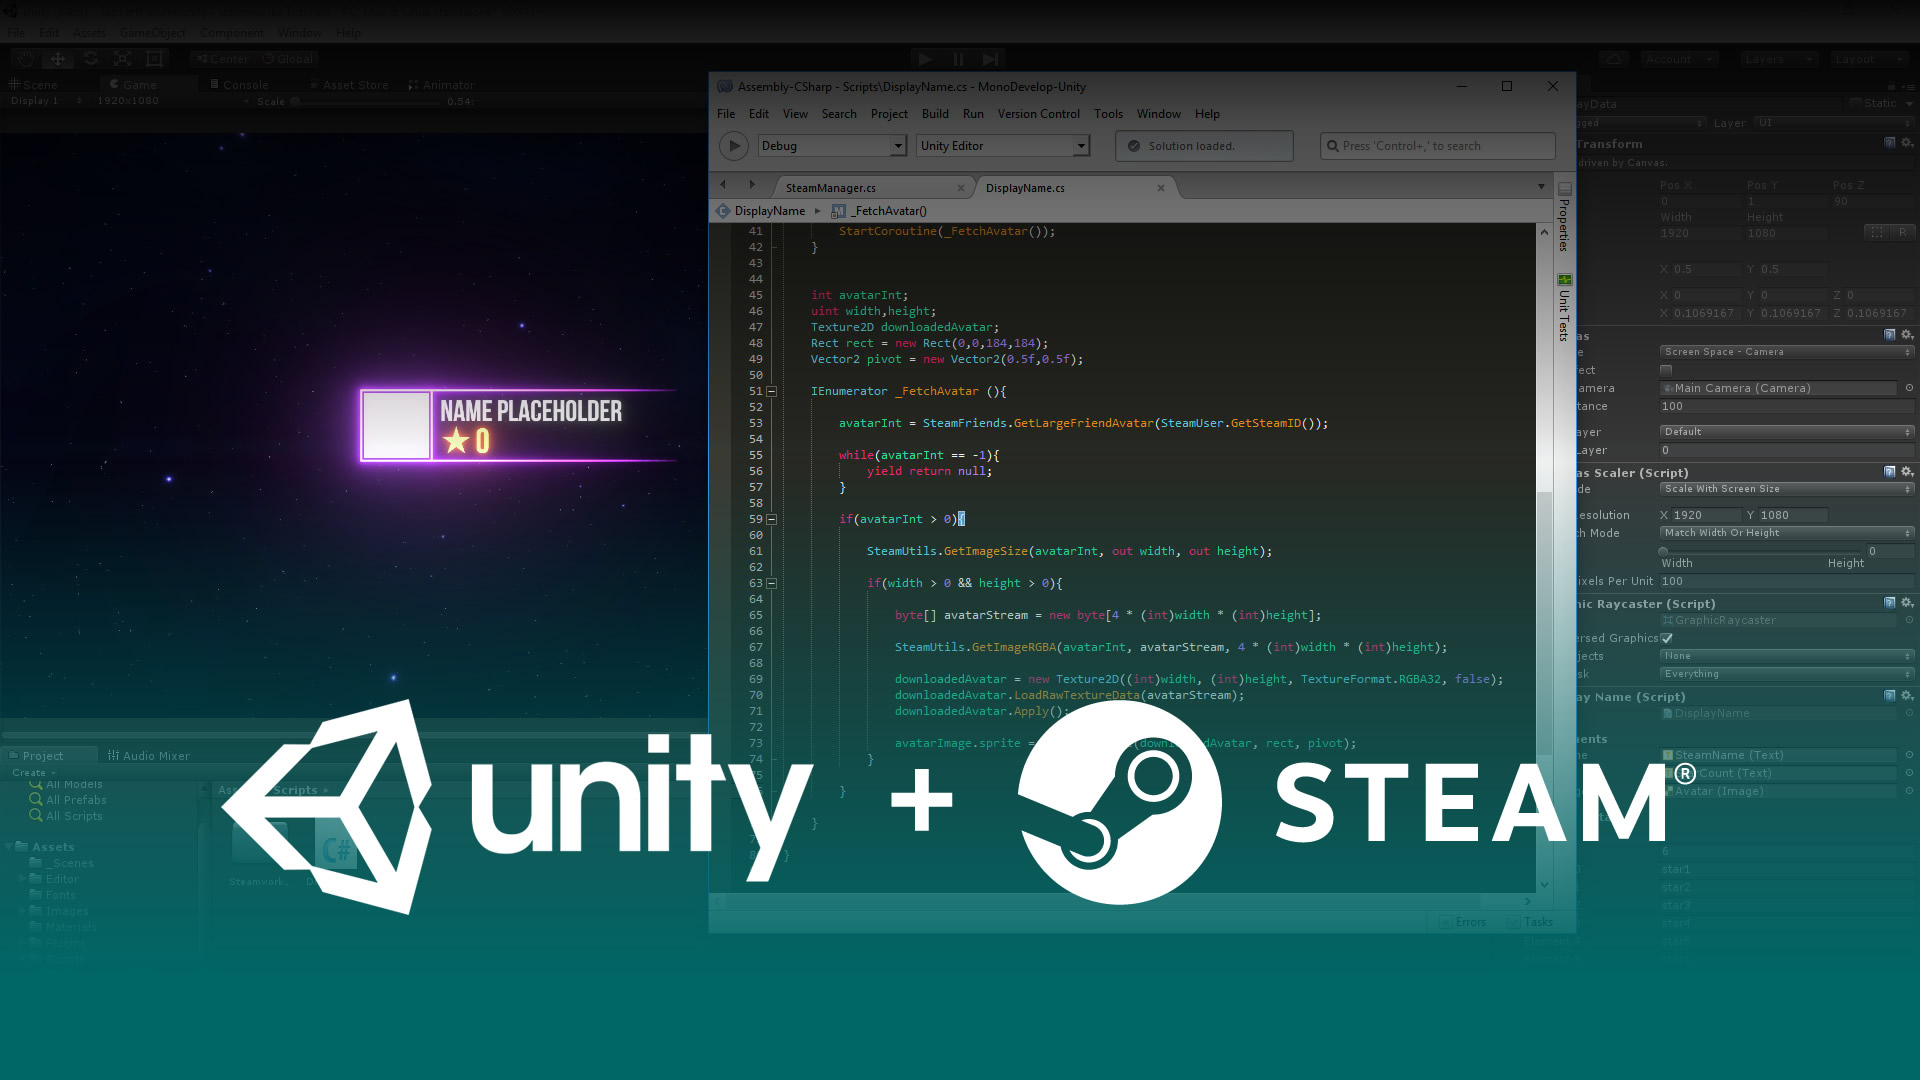 Unity - Getting Started with Steam tutorial - Mod DB